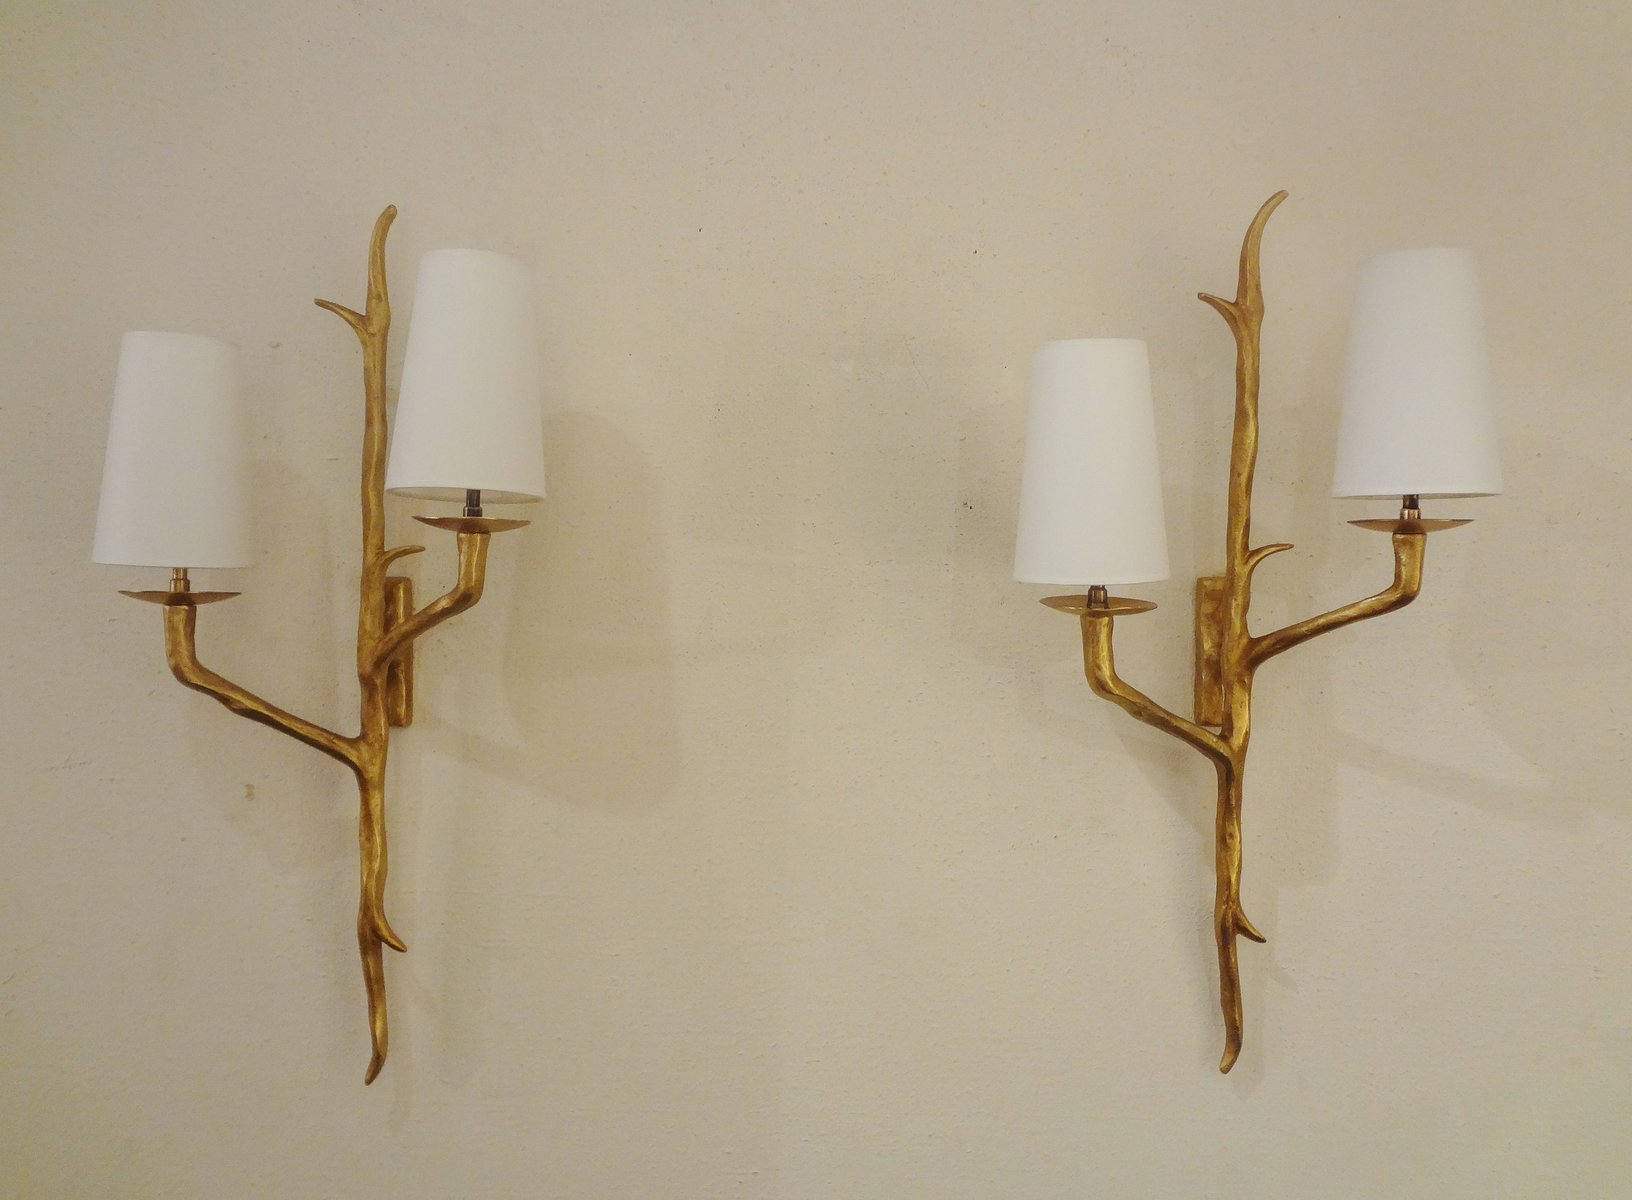 bronze wall sconces from maison arlus set of 3